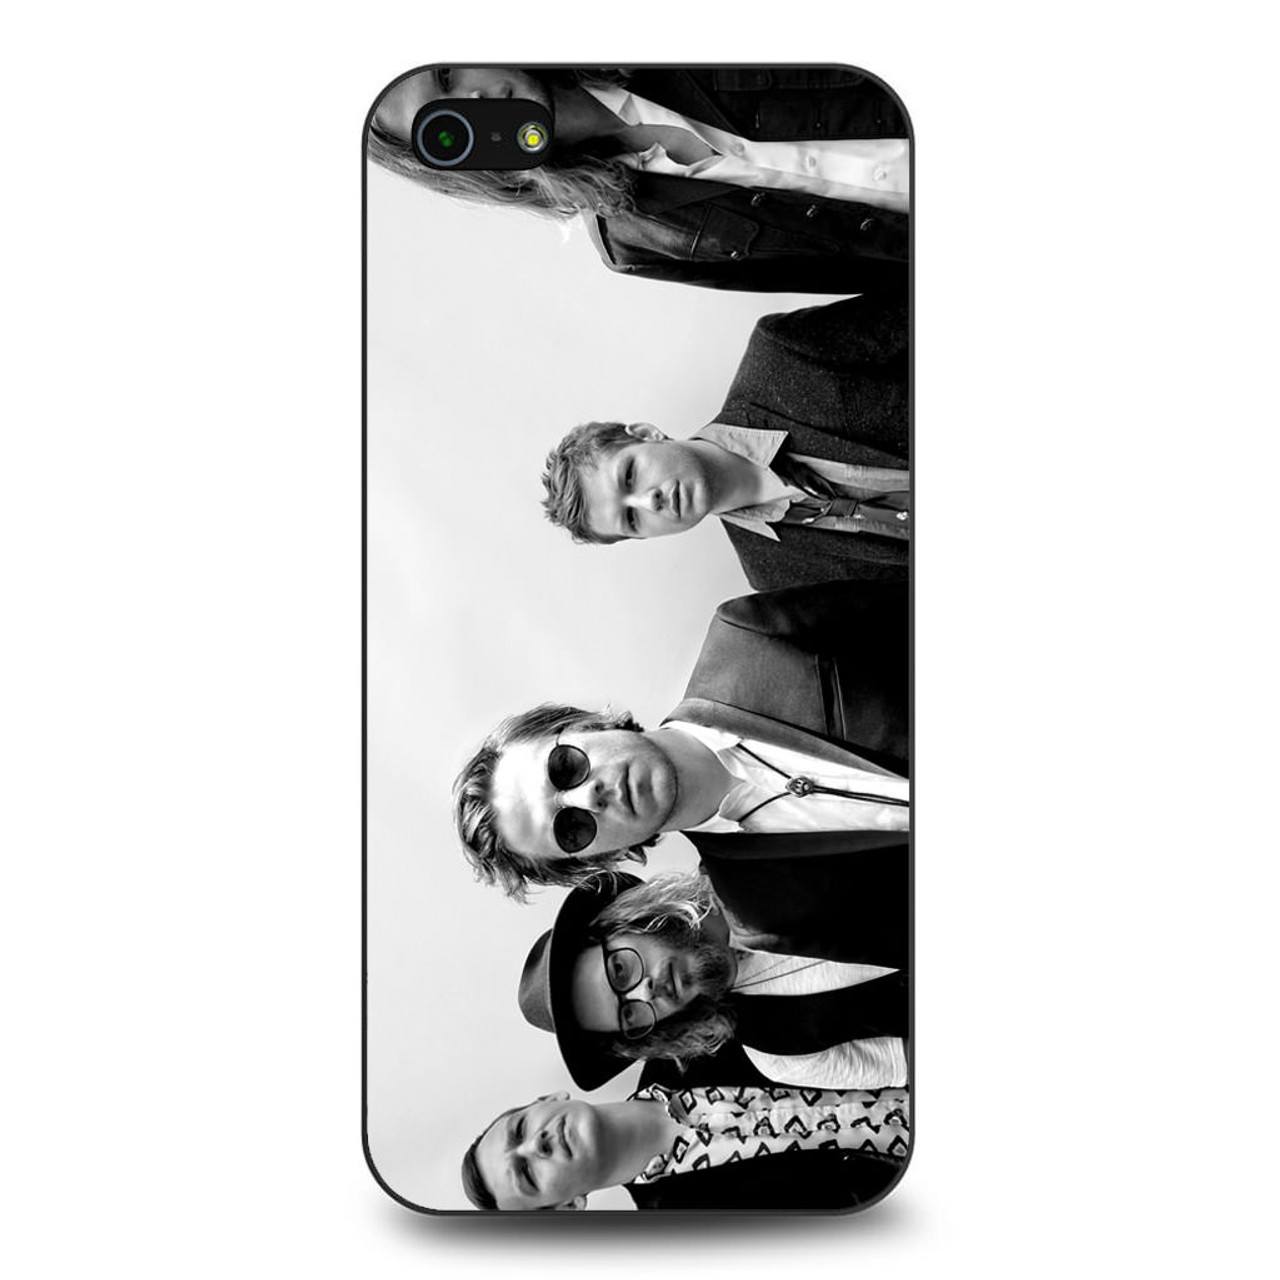 Cage The Elephant Wallpaper Iphone 5 5s Se Case Caseshunter